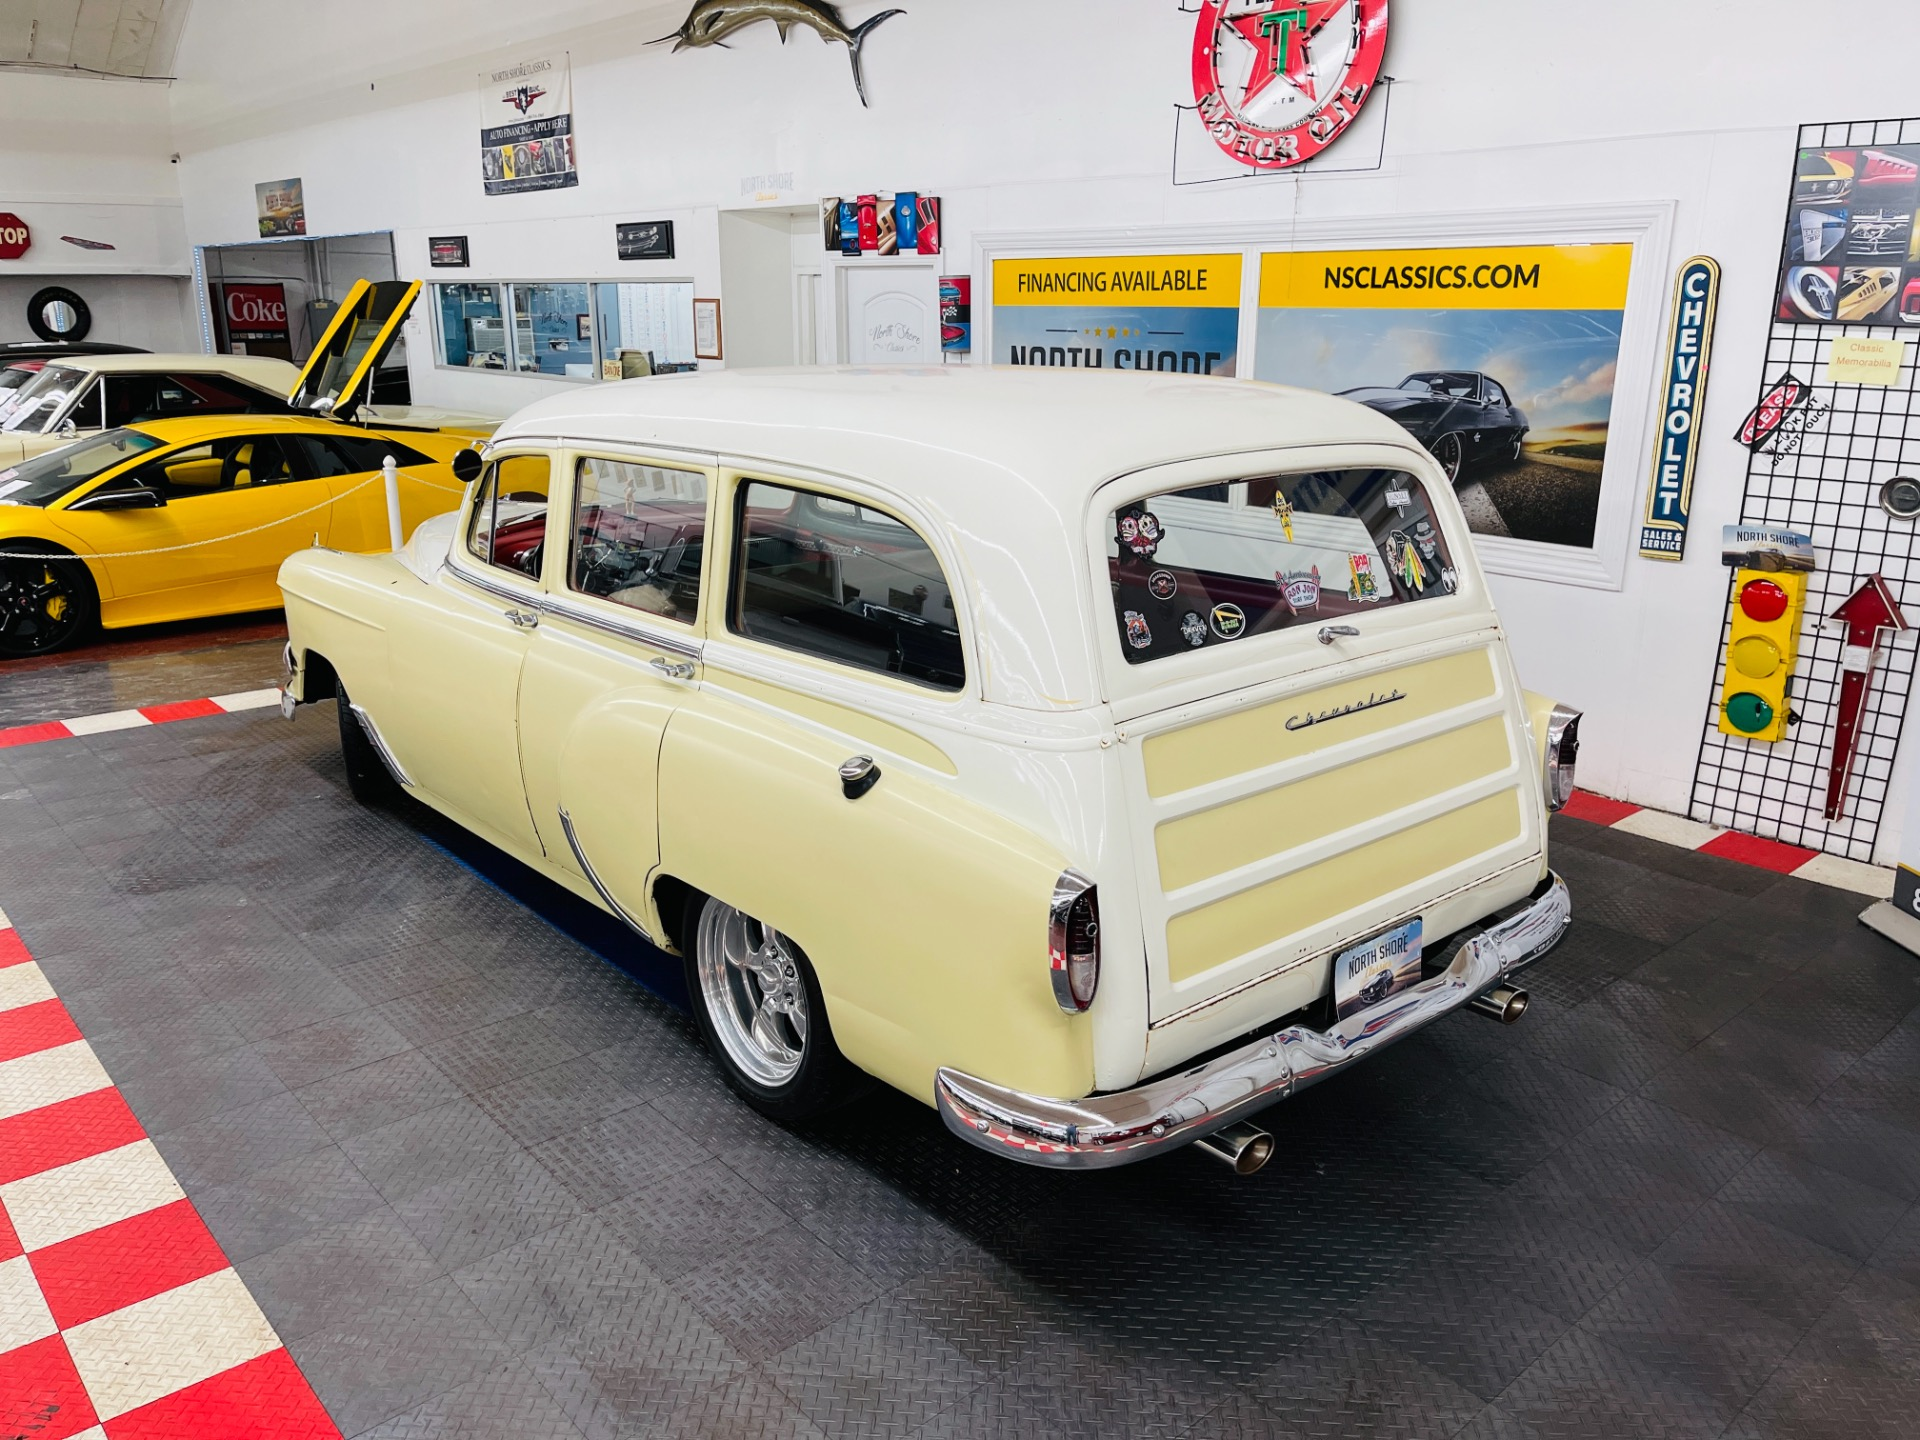 Used 1954 Chevrolet 150 - 4 DOOR WAGON - 350 TPI ENGINE - 700R4 OVERDIVE TRANS - | Mundelein, IL